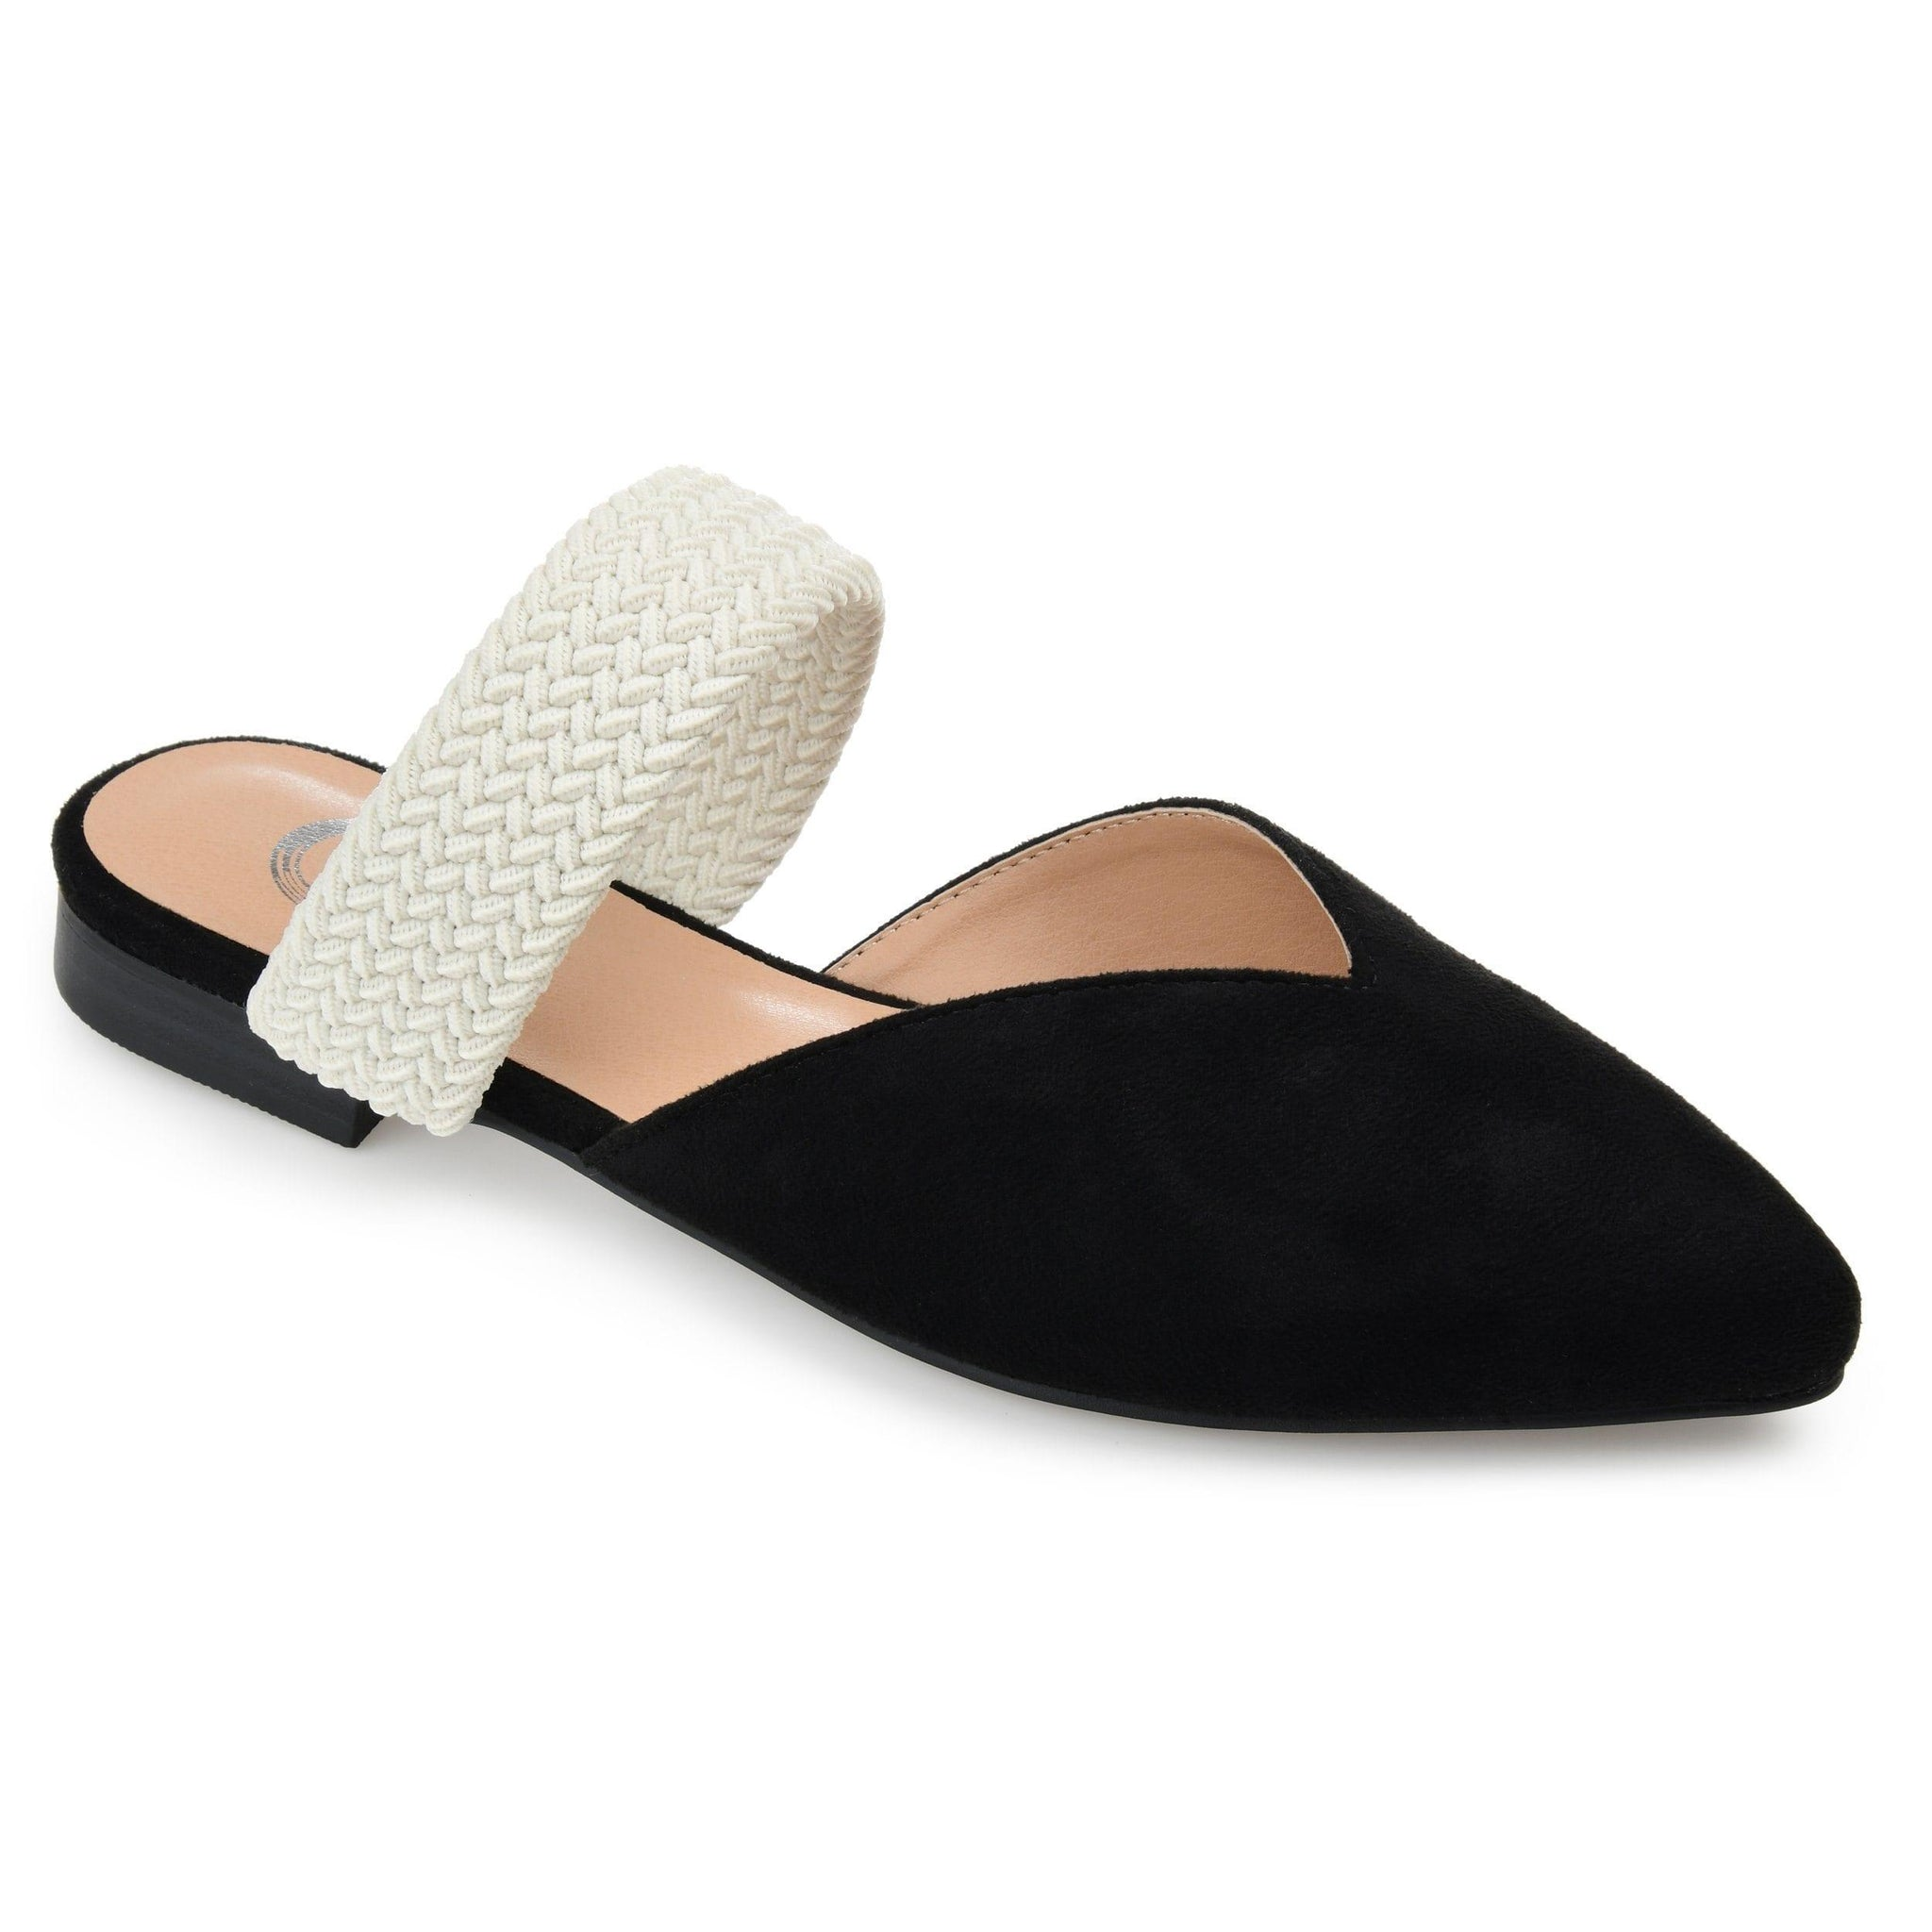 ROXEENE SHOES Journee Collection Black 6.5